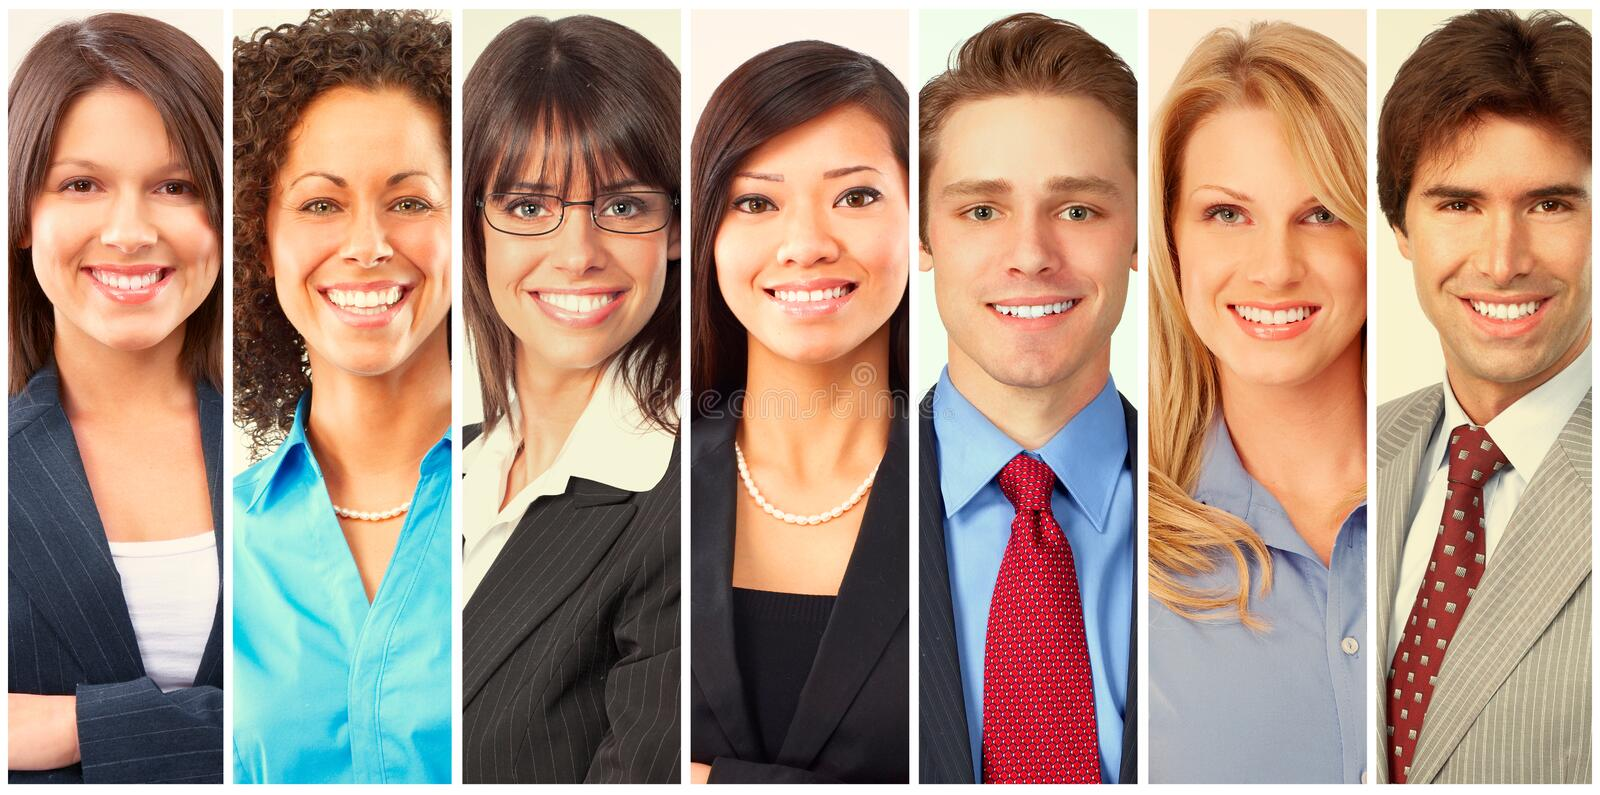 Set of business people royalty free stock image